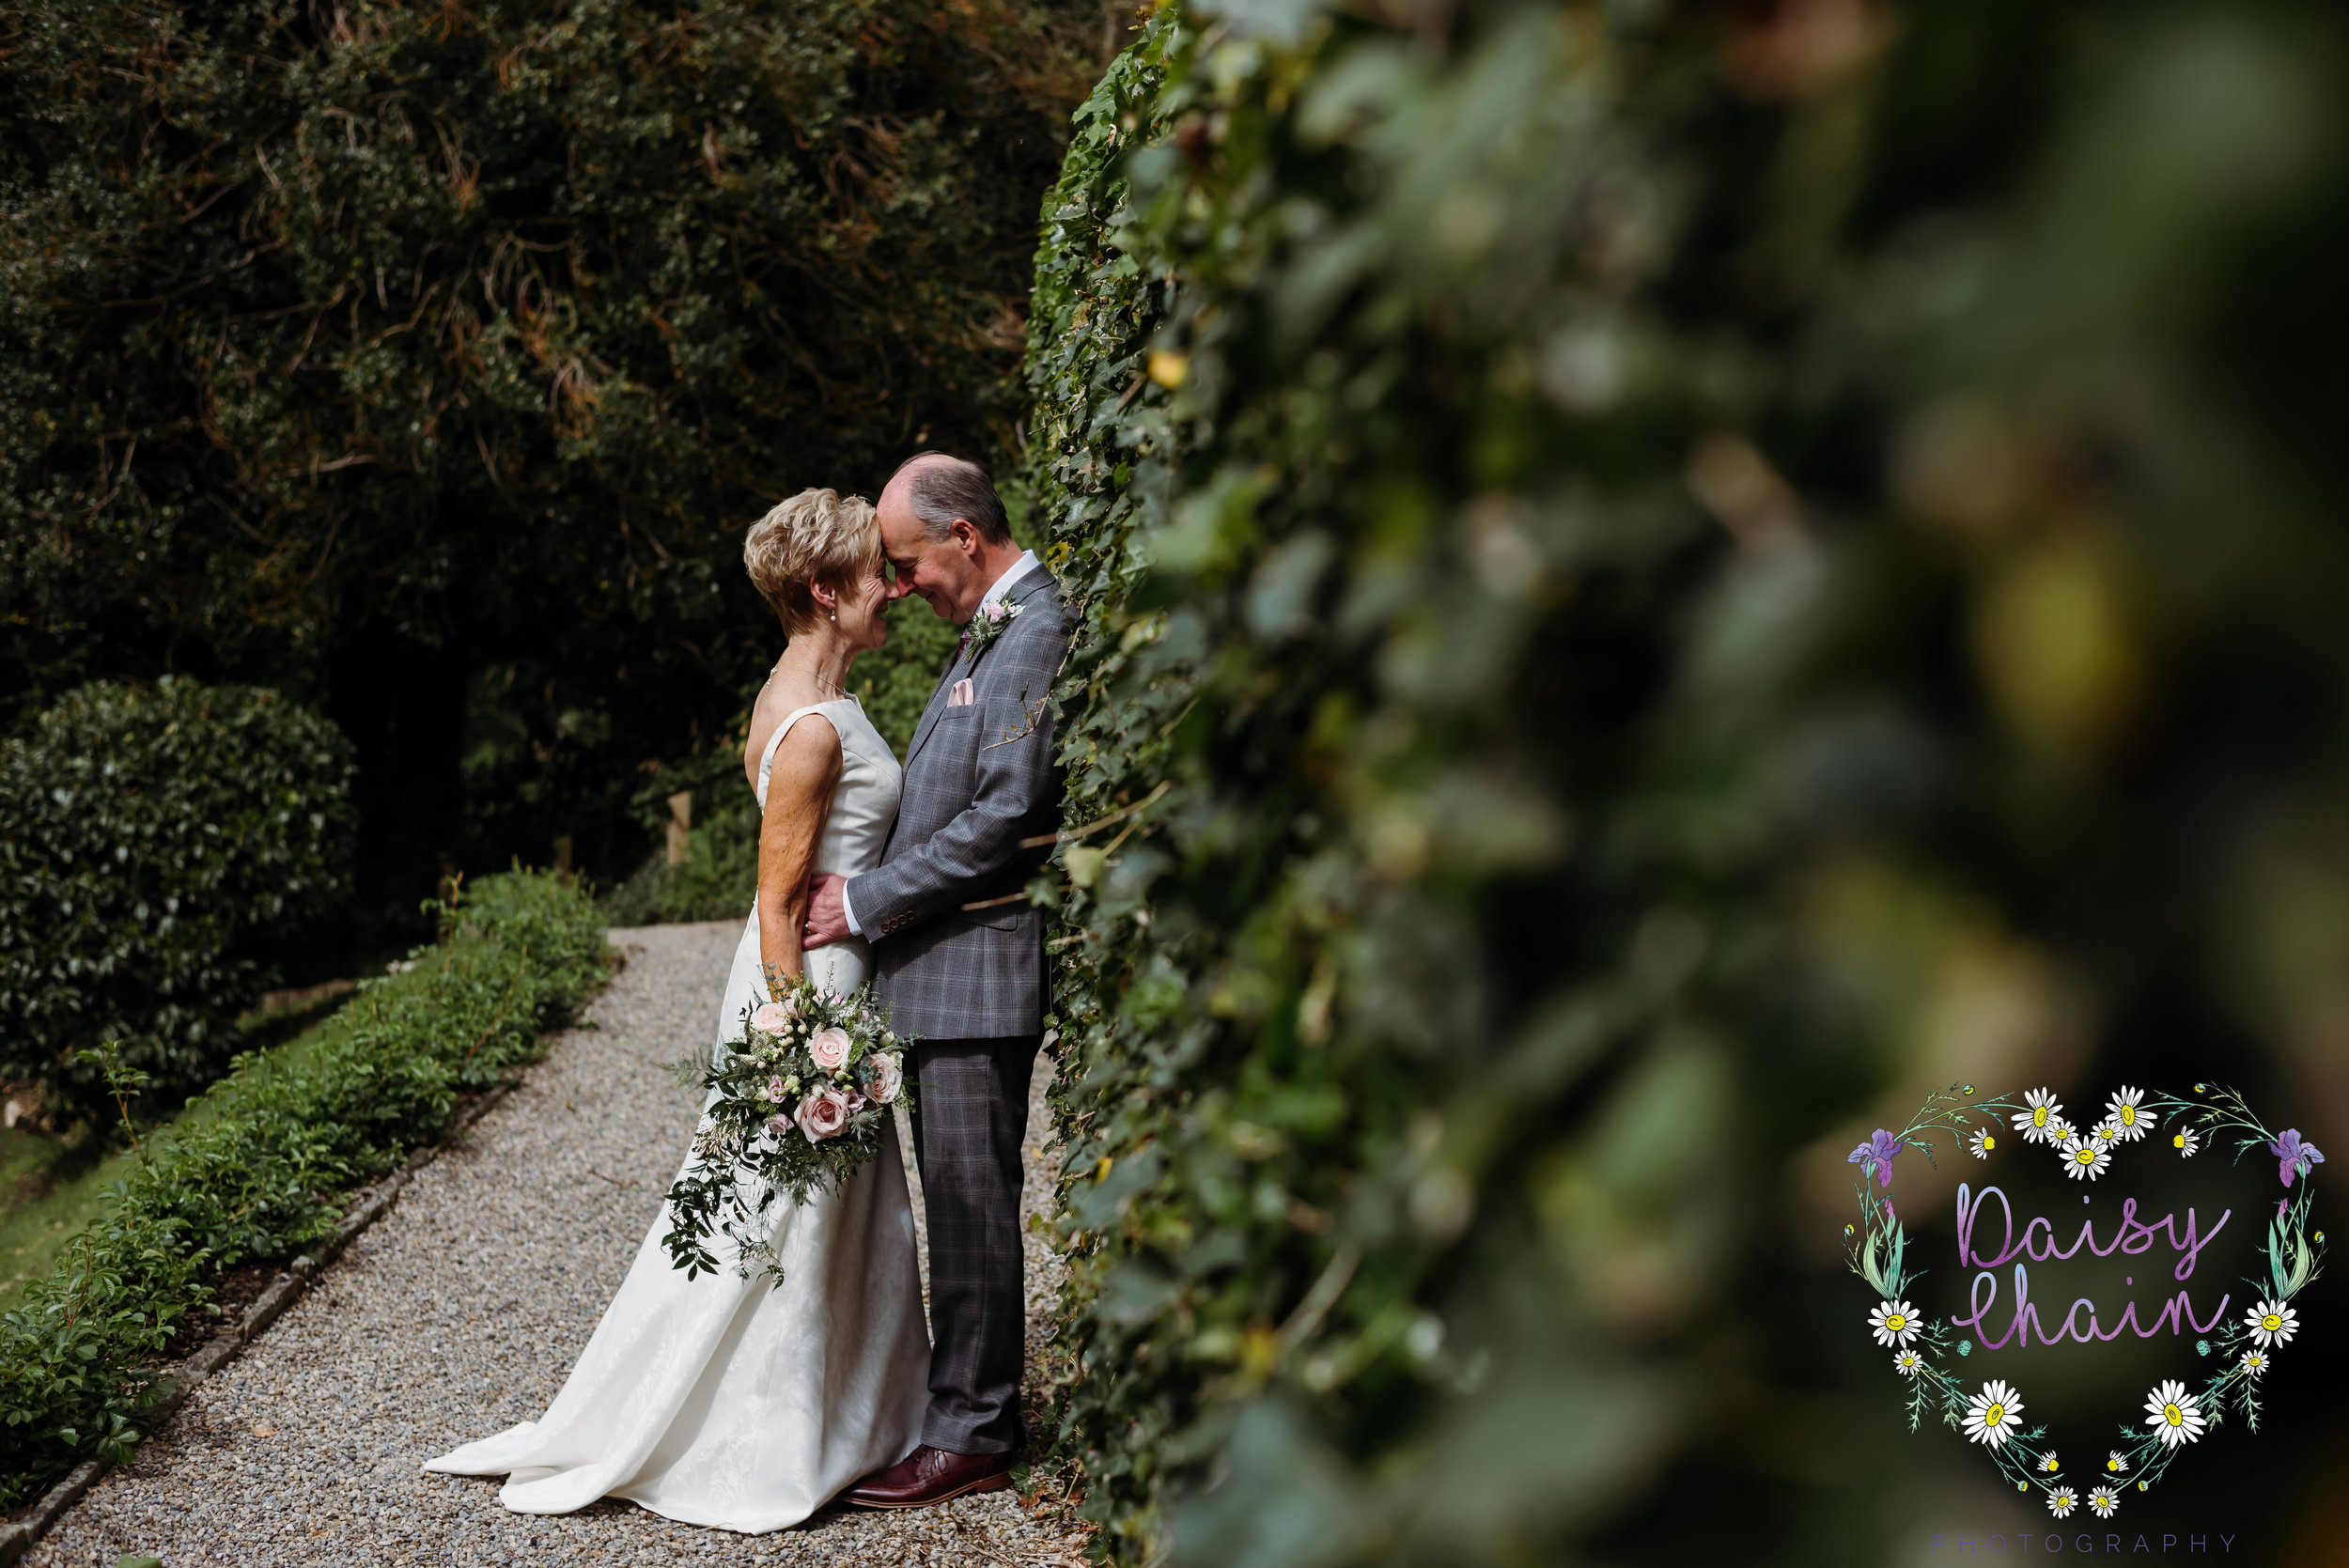 Mitton Hall wedding - garden